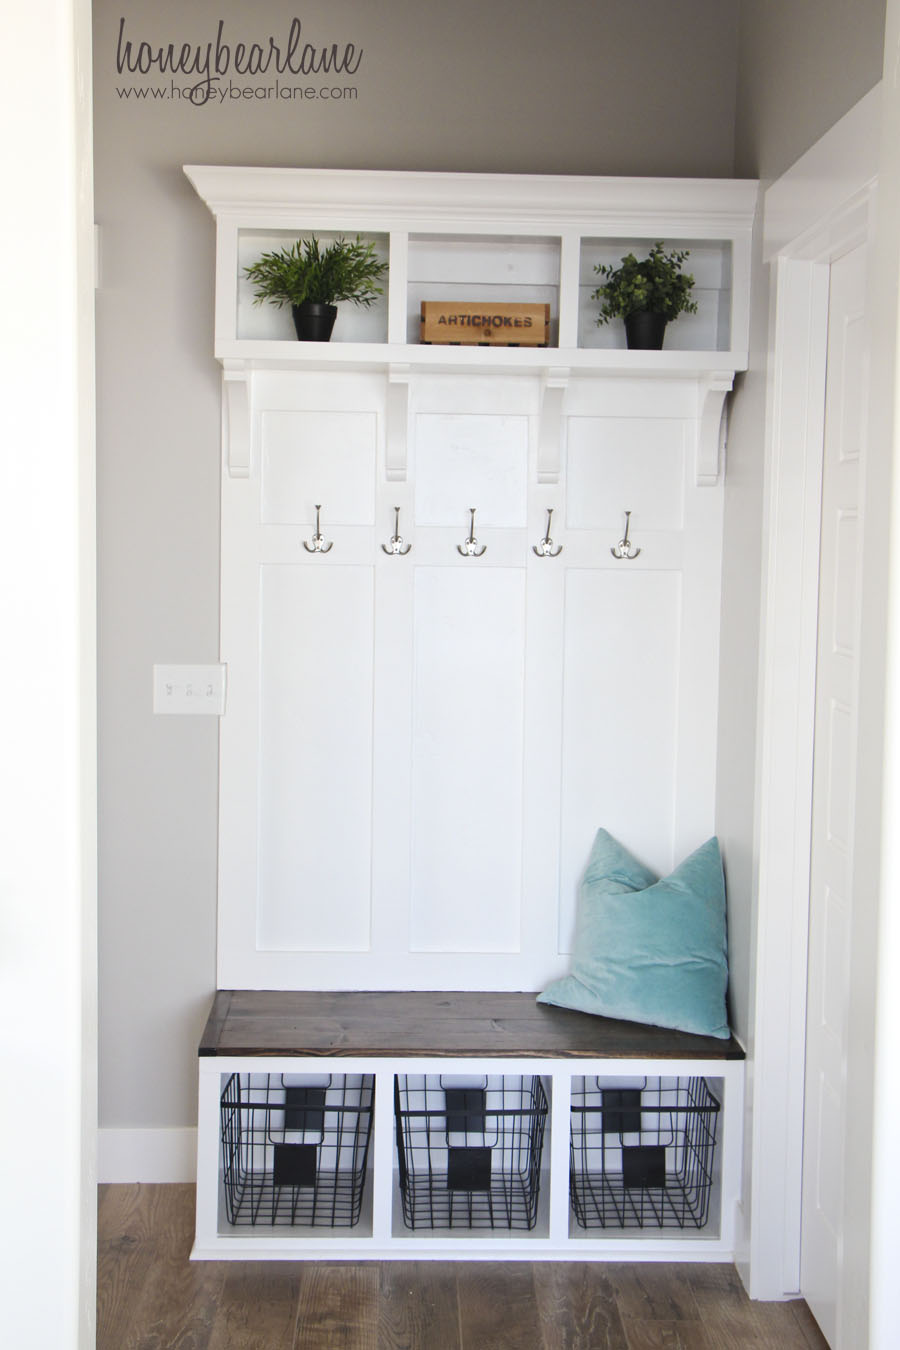 DIY Mudroom Bench Part 2 - Honeybear Lane